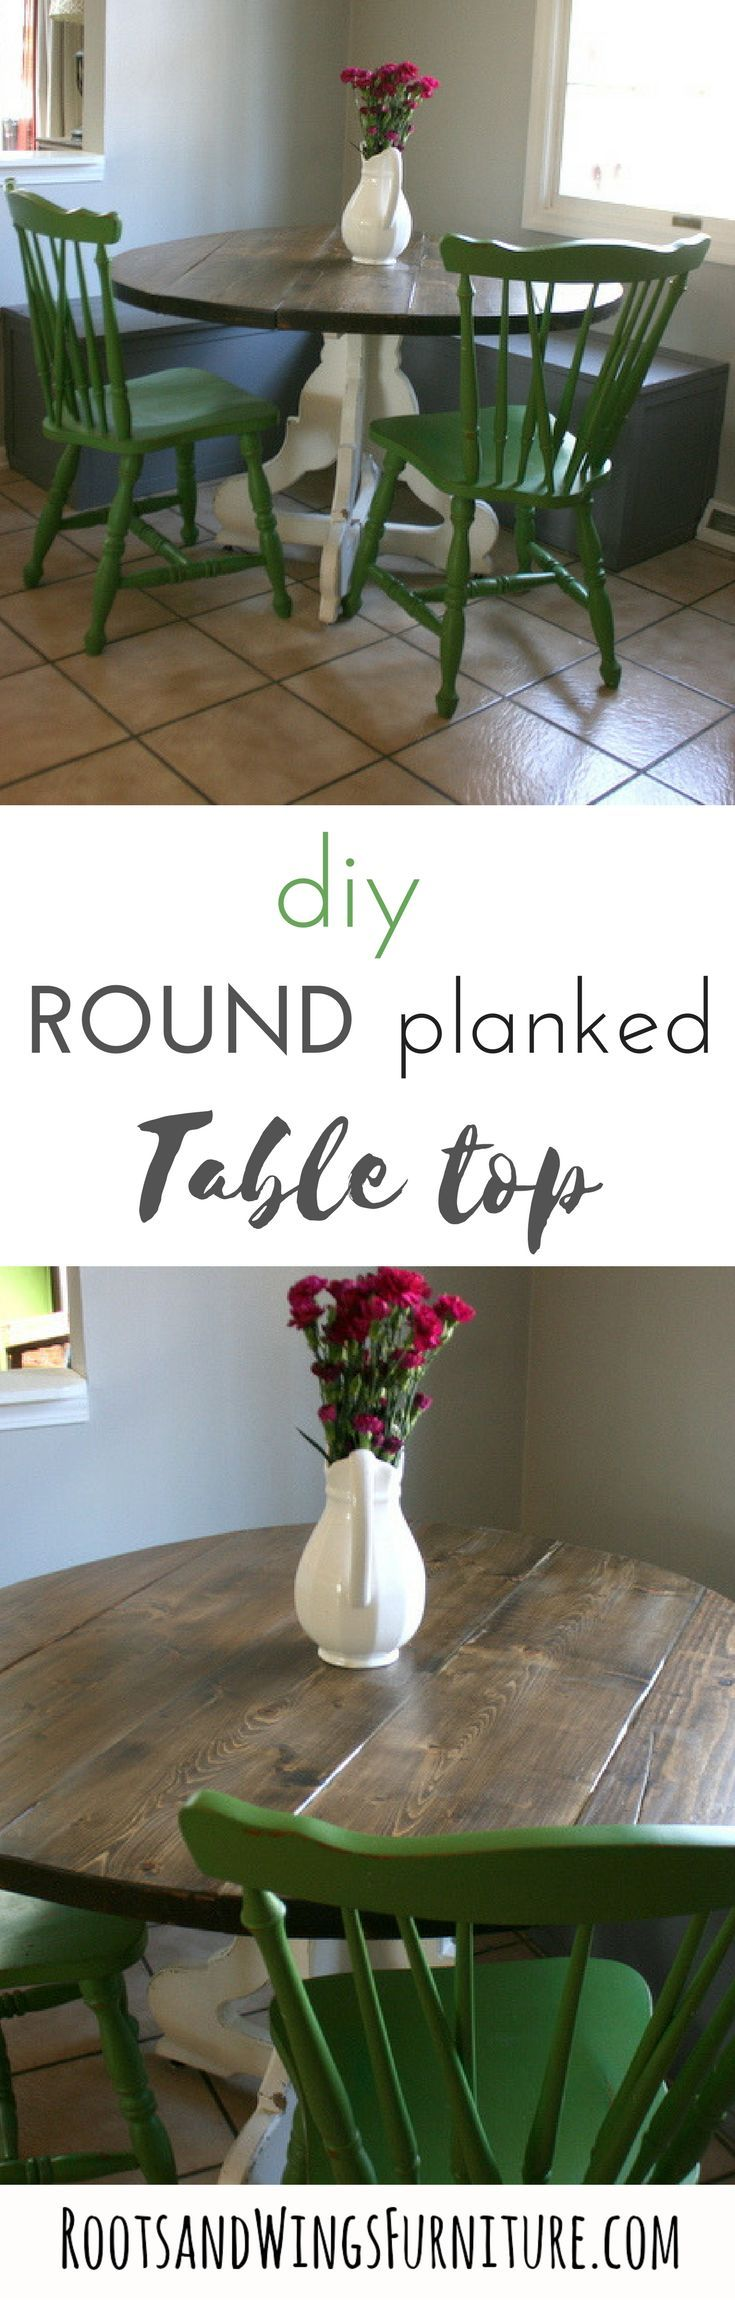 How to build a custom sized round table top.  Planked farmhouse round table top step by step instructions by Jenni of Roots and Wings Furniture.